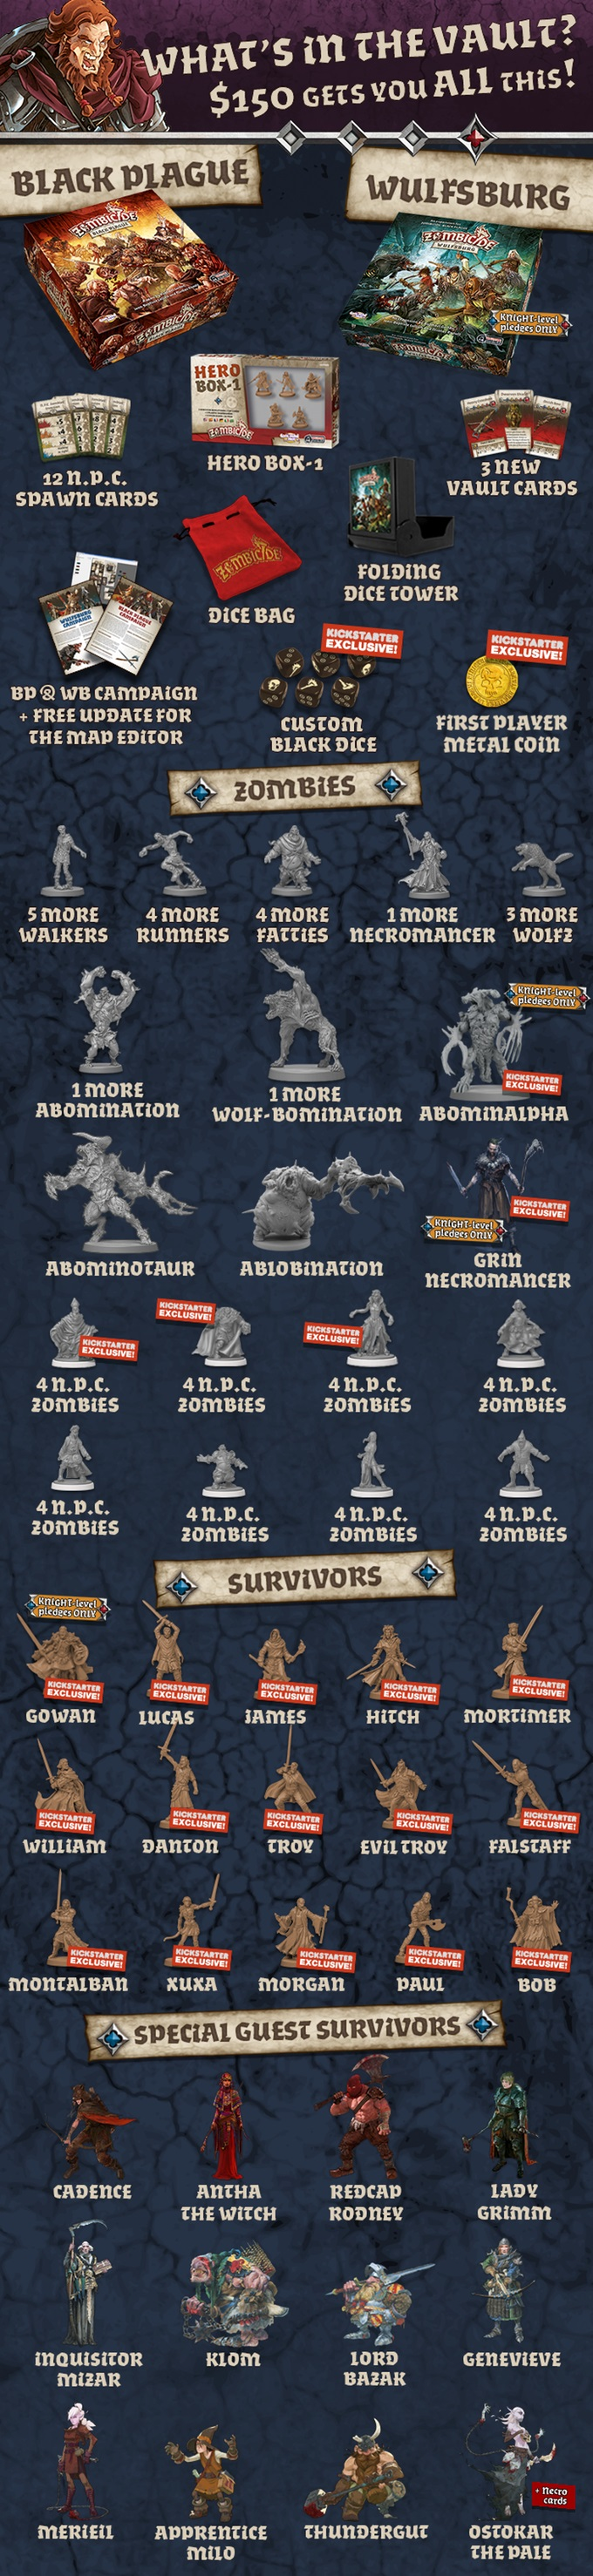 Knight Level Pledge Rewards - Zombicide Black Plague